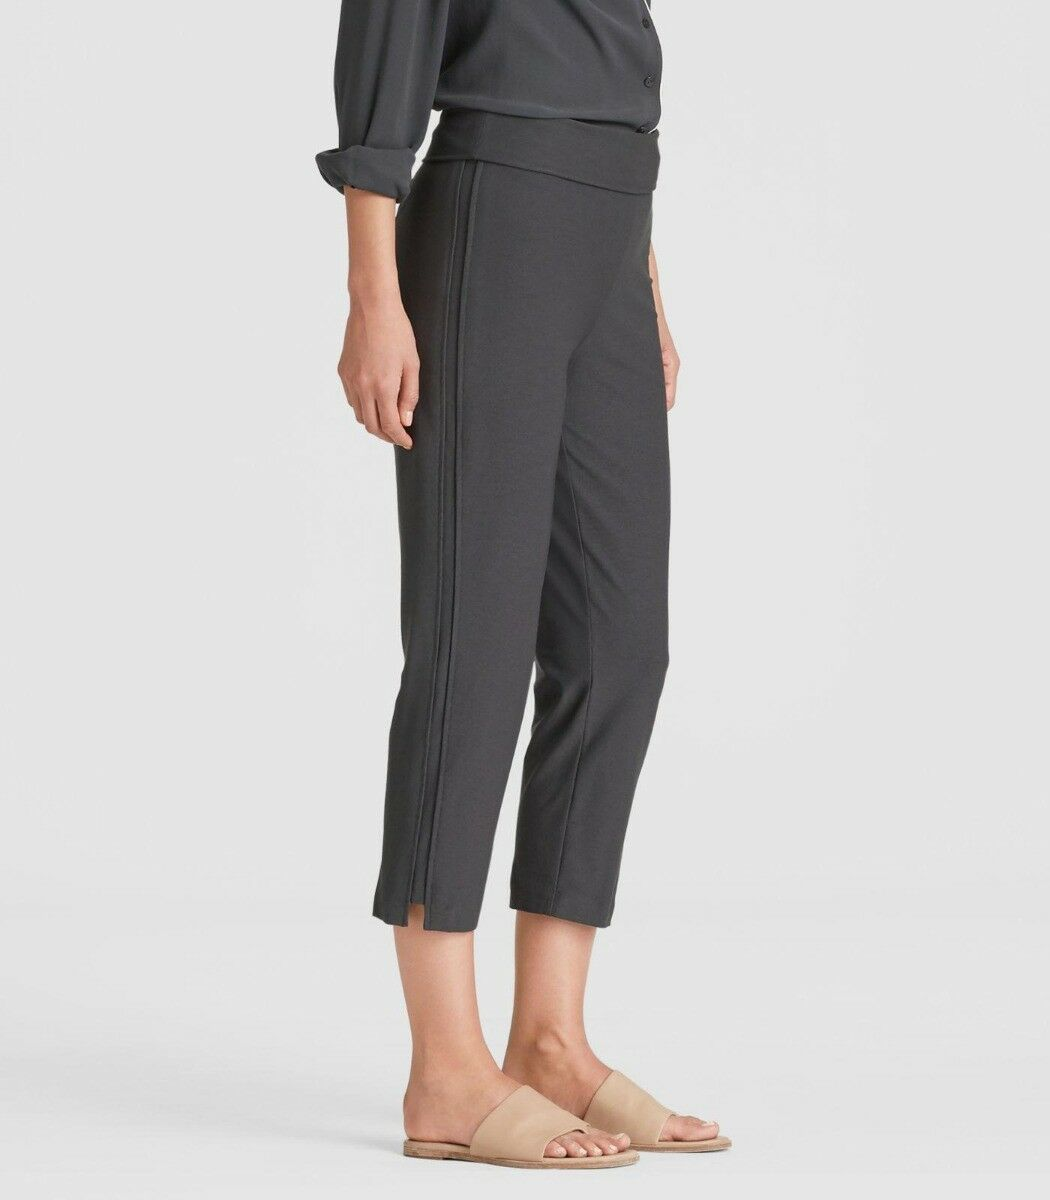 Eileen Fisher Graphite Washable Stretch Crepe Capri Pant Foldover Waist XL NWT